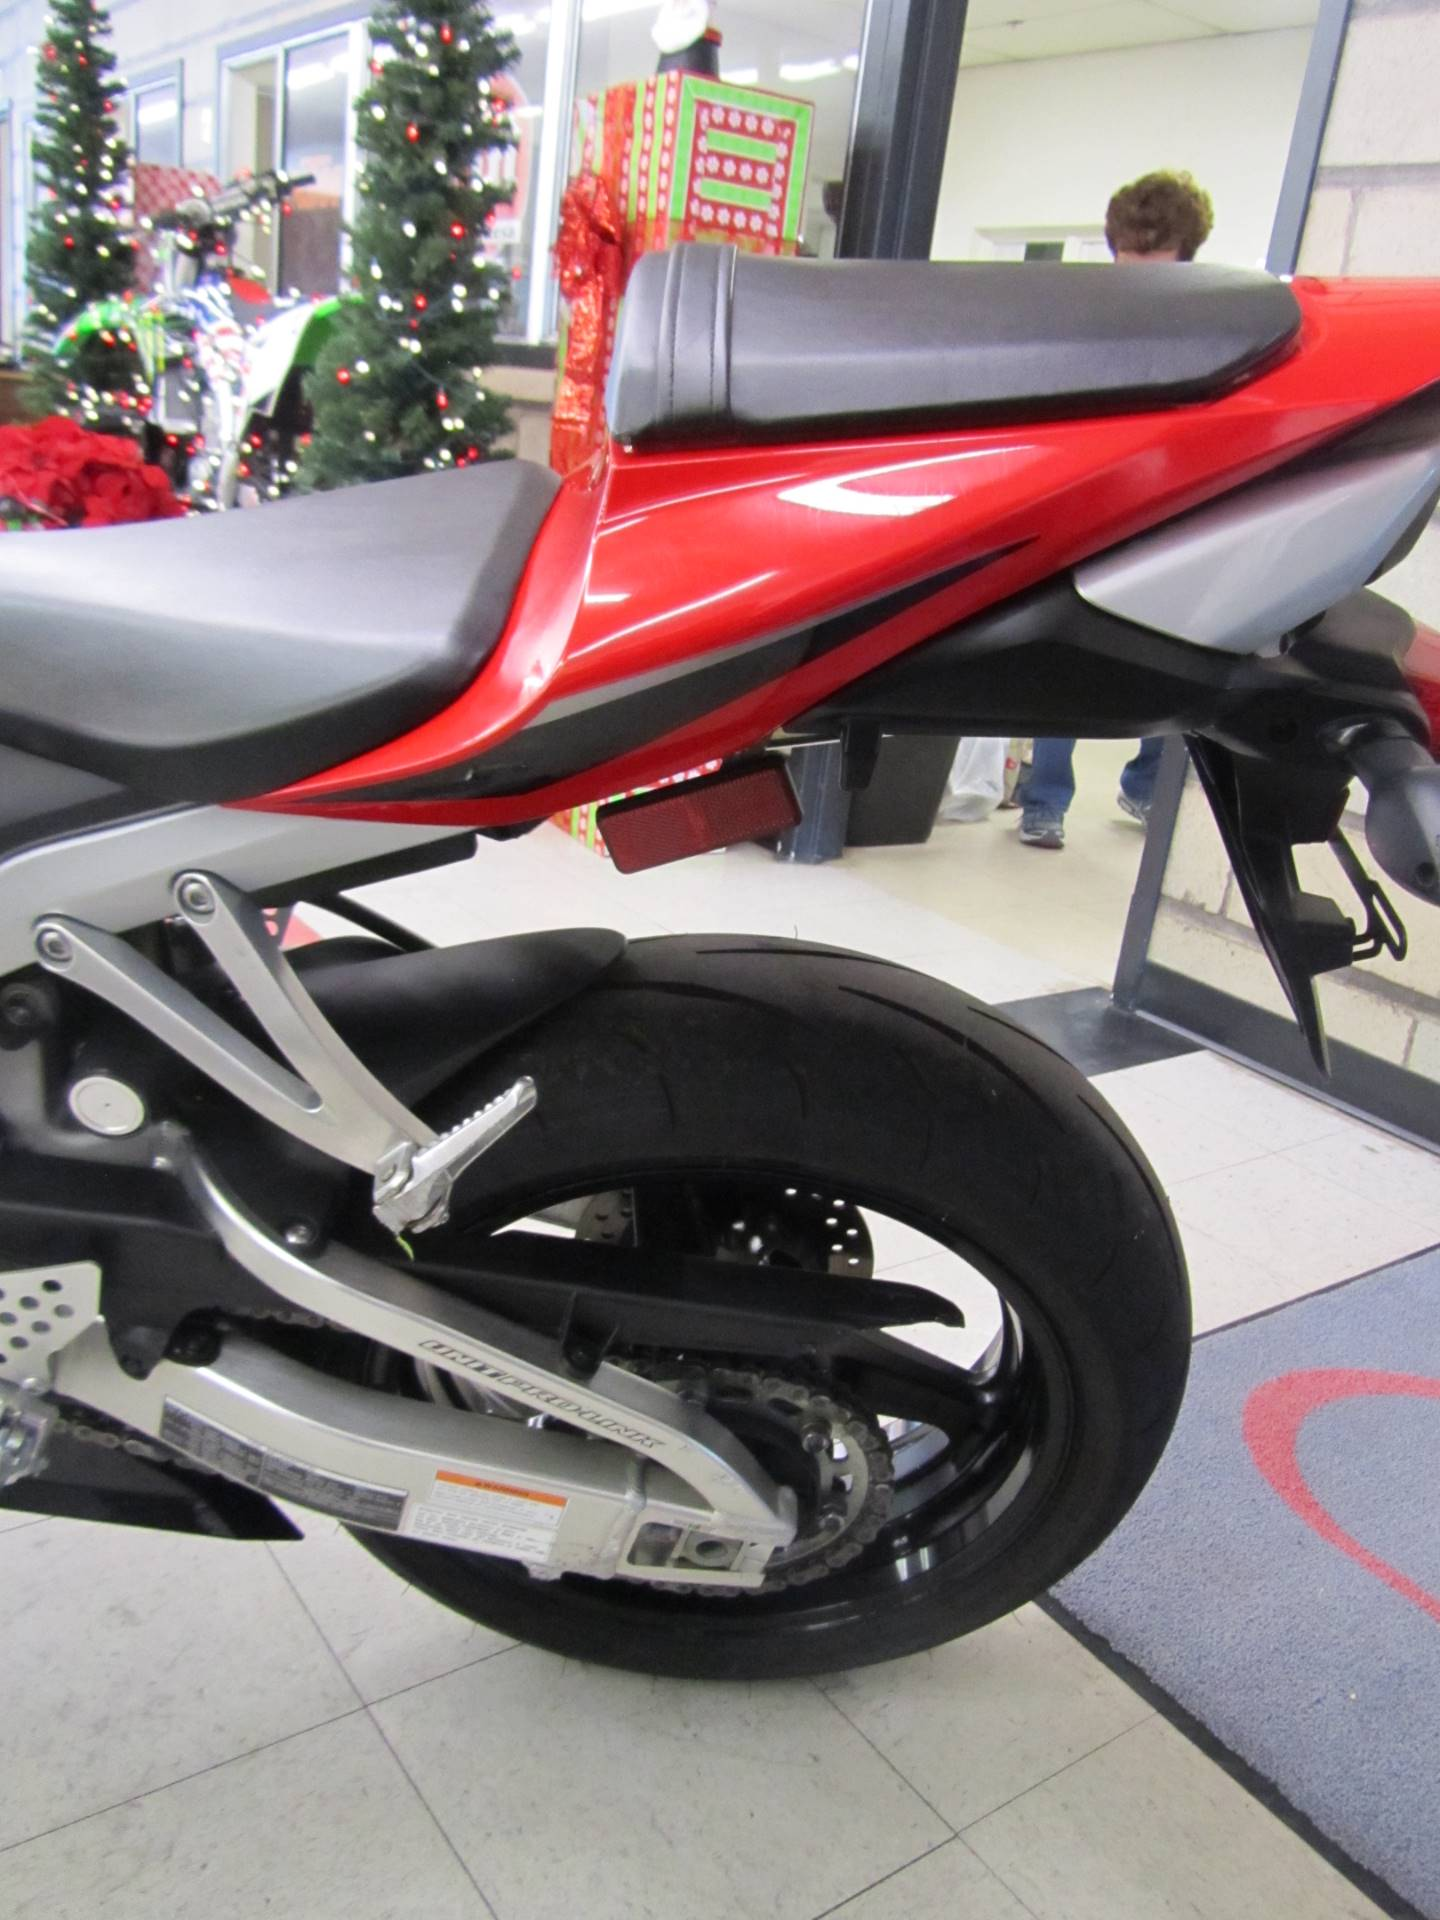 2011 Honda Cbr600rr For Sale Colorado Springs Co 104045